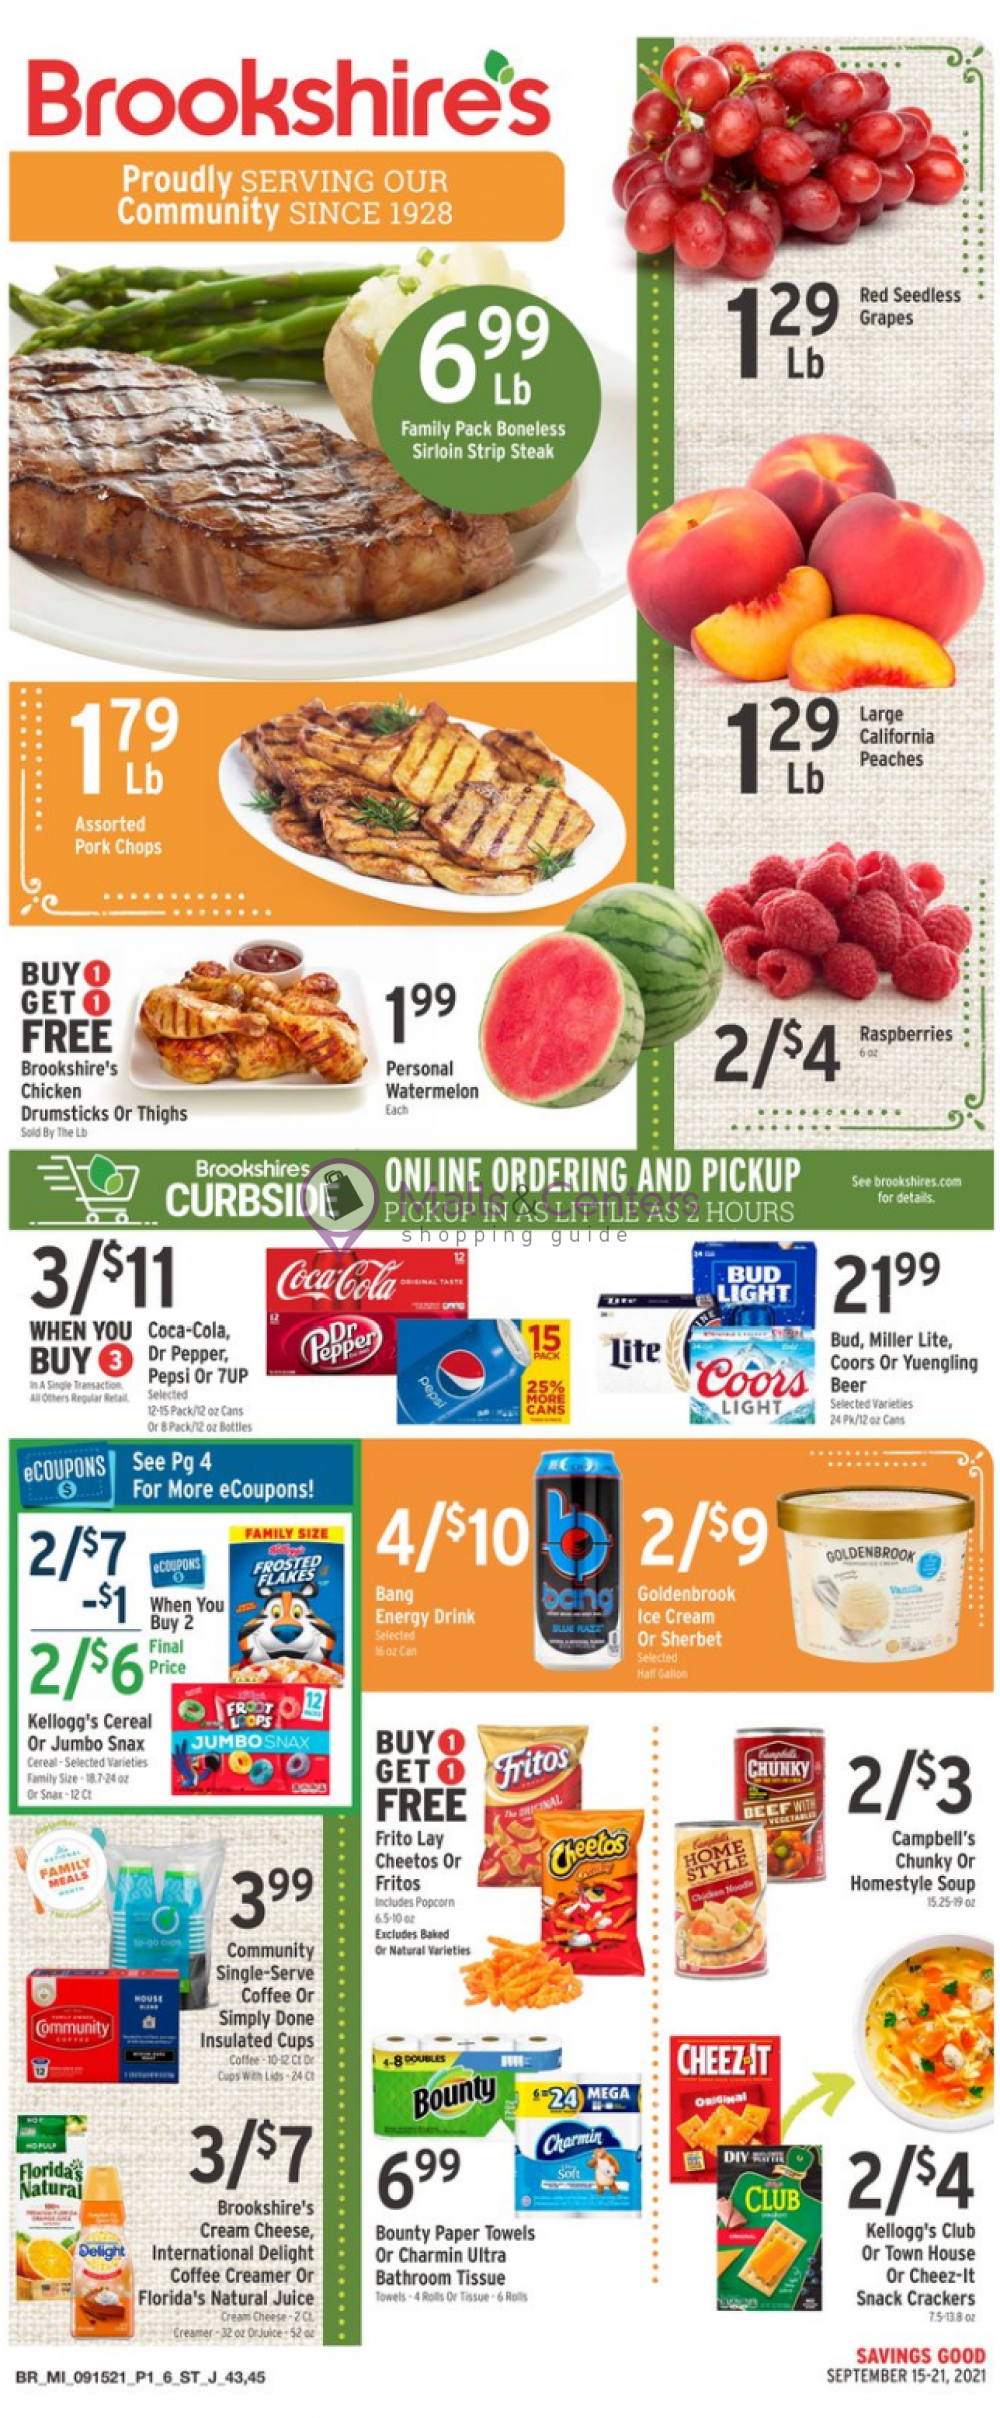 weekly ads Brookshire's Food & Pharmacy - page 1 - mallscenters.com